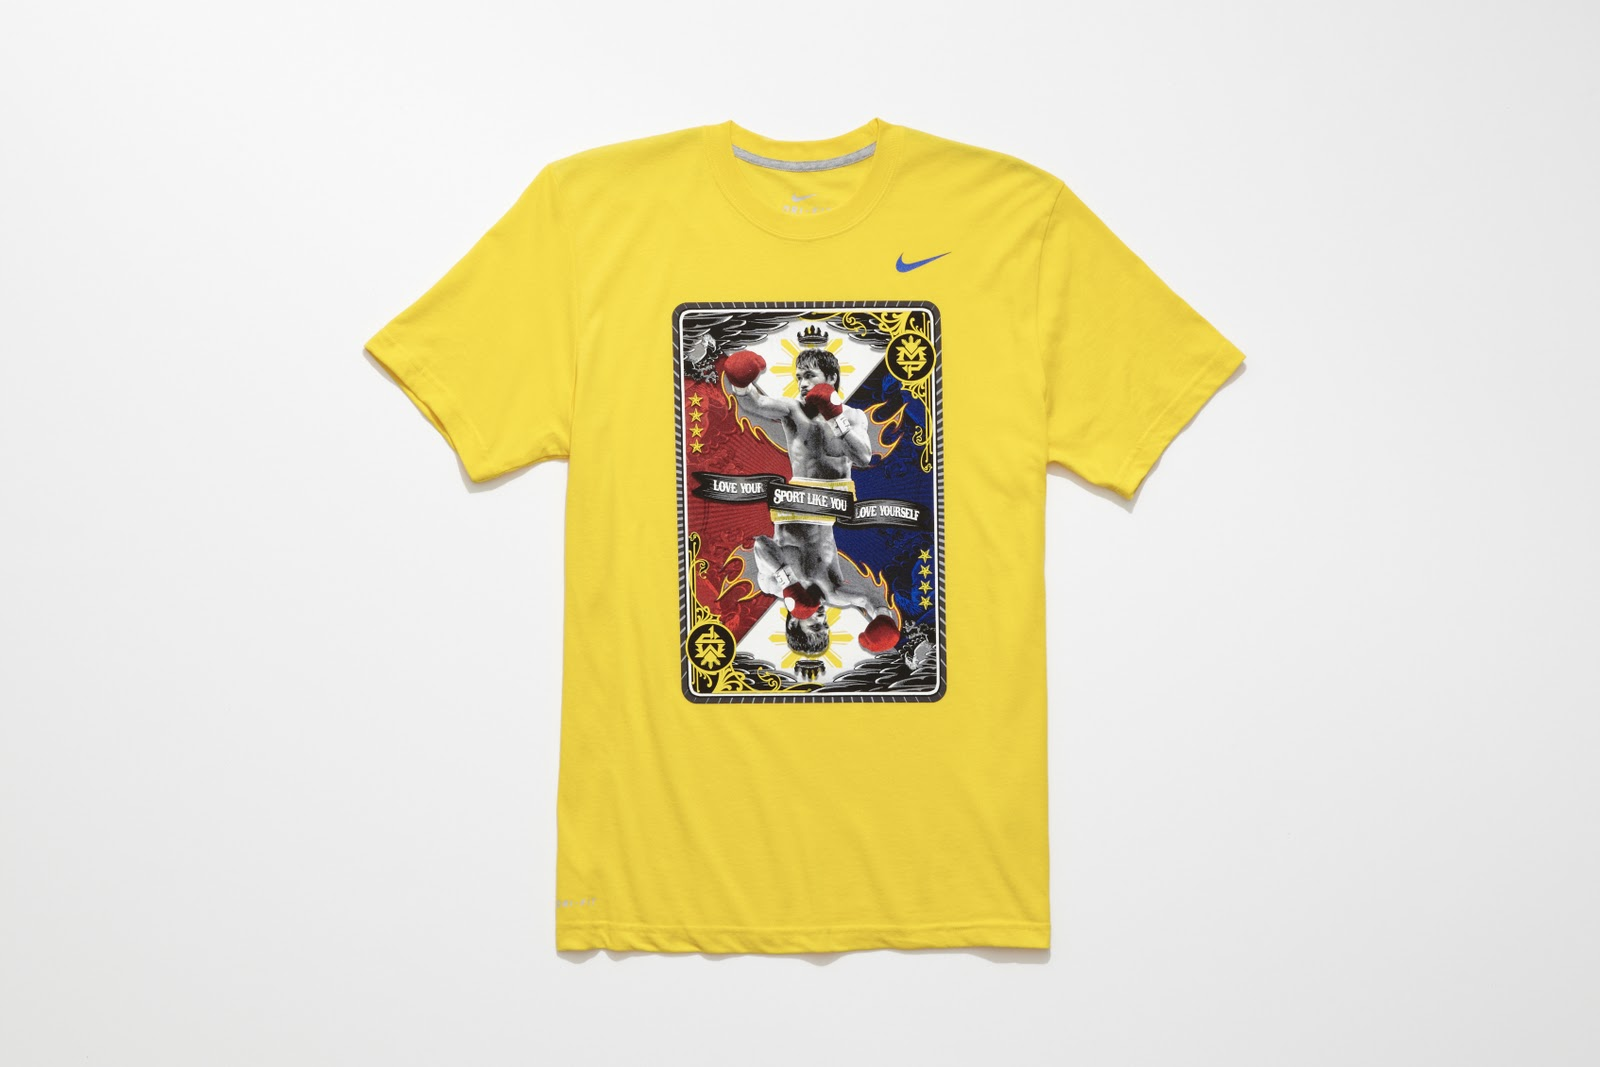 Nike unveils holiday 2011 manny pacquiao collection mr sport for Manny pacquiao nike t shirt